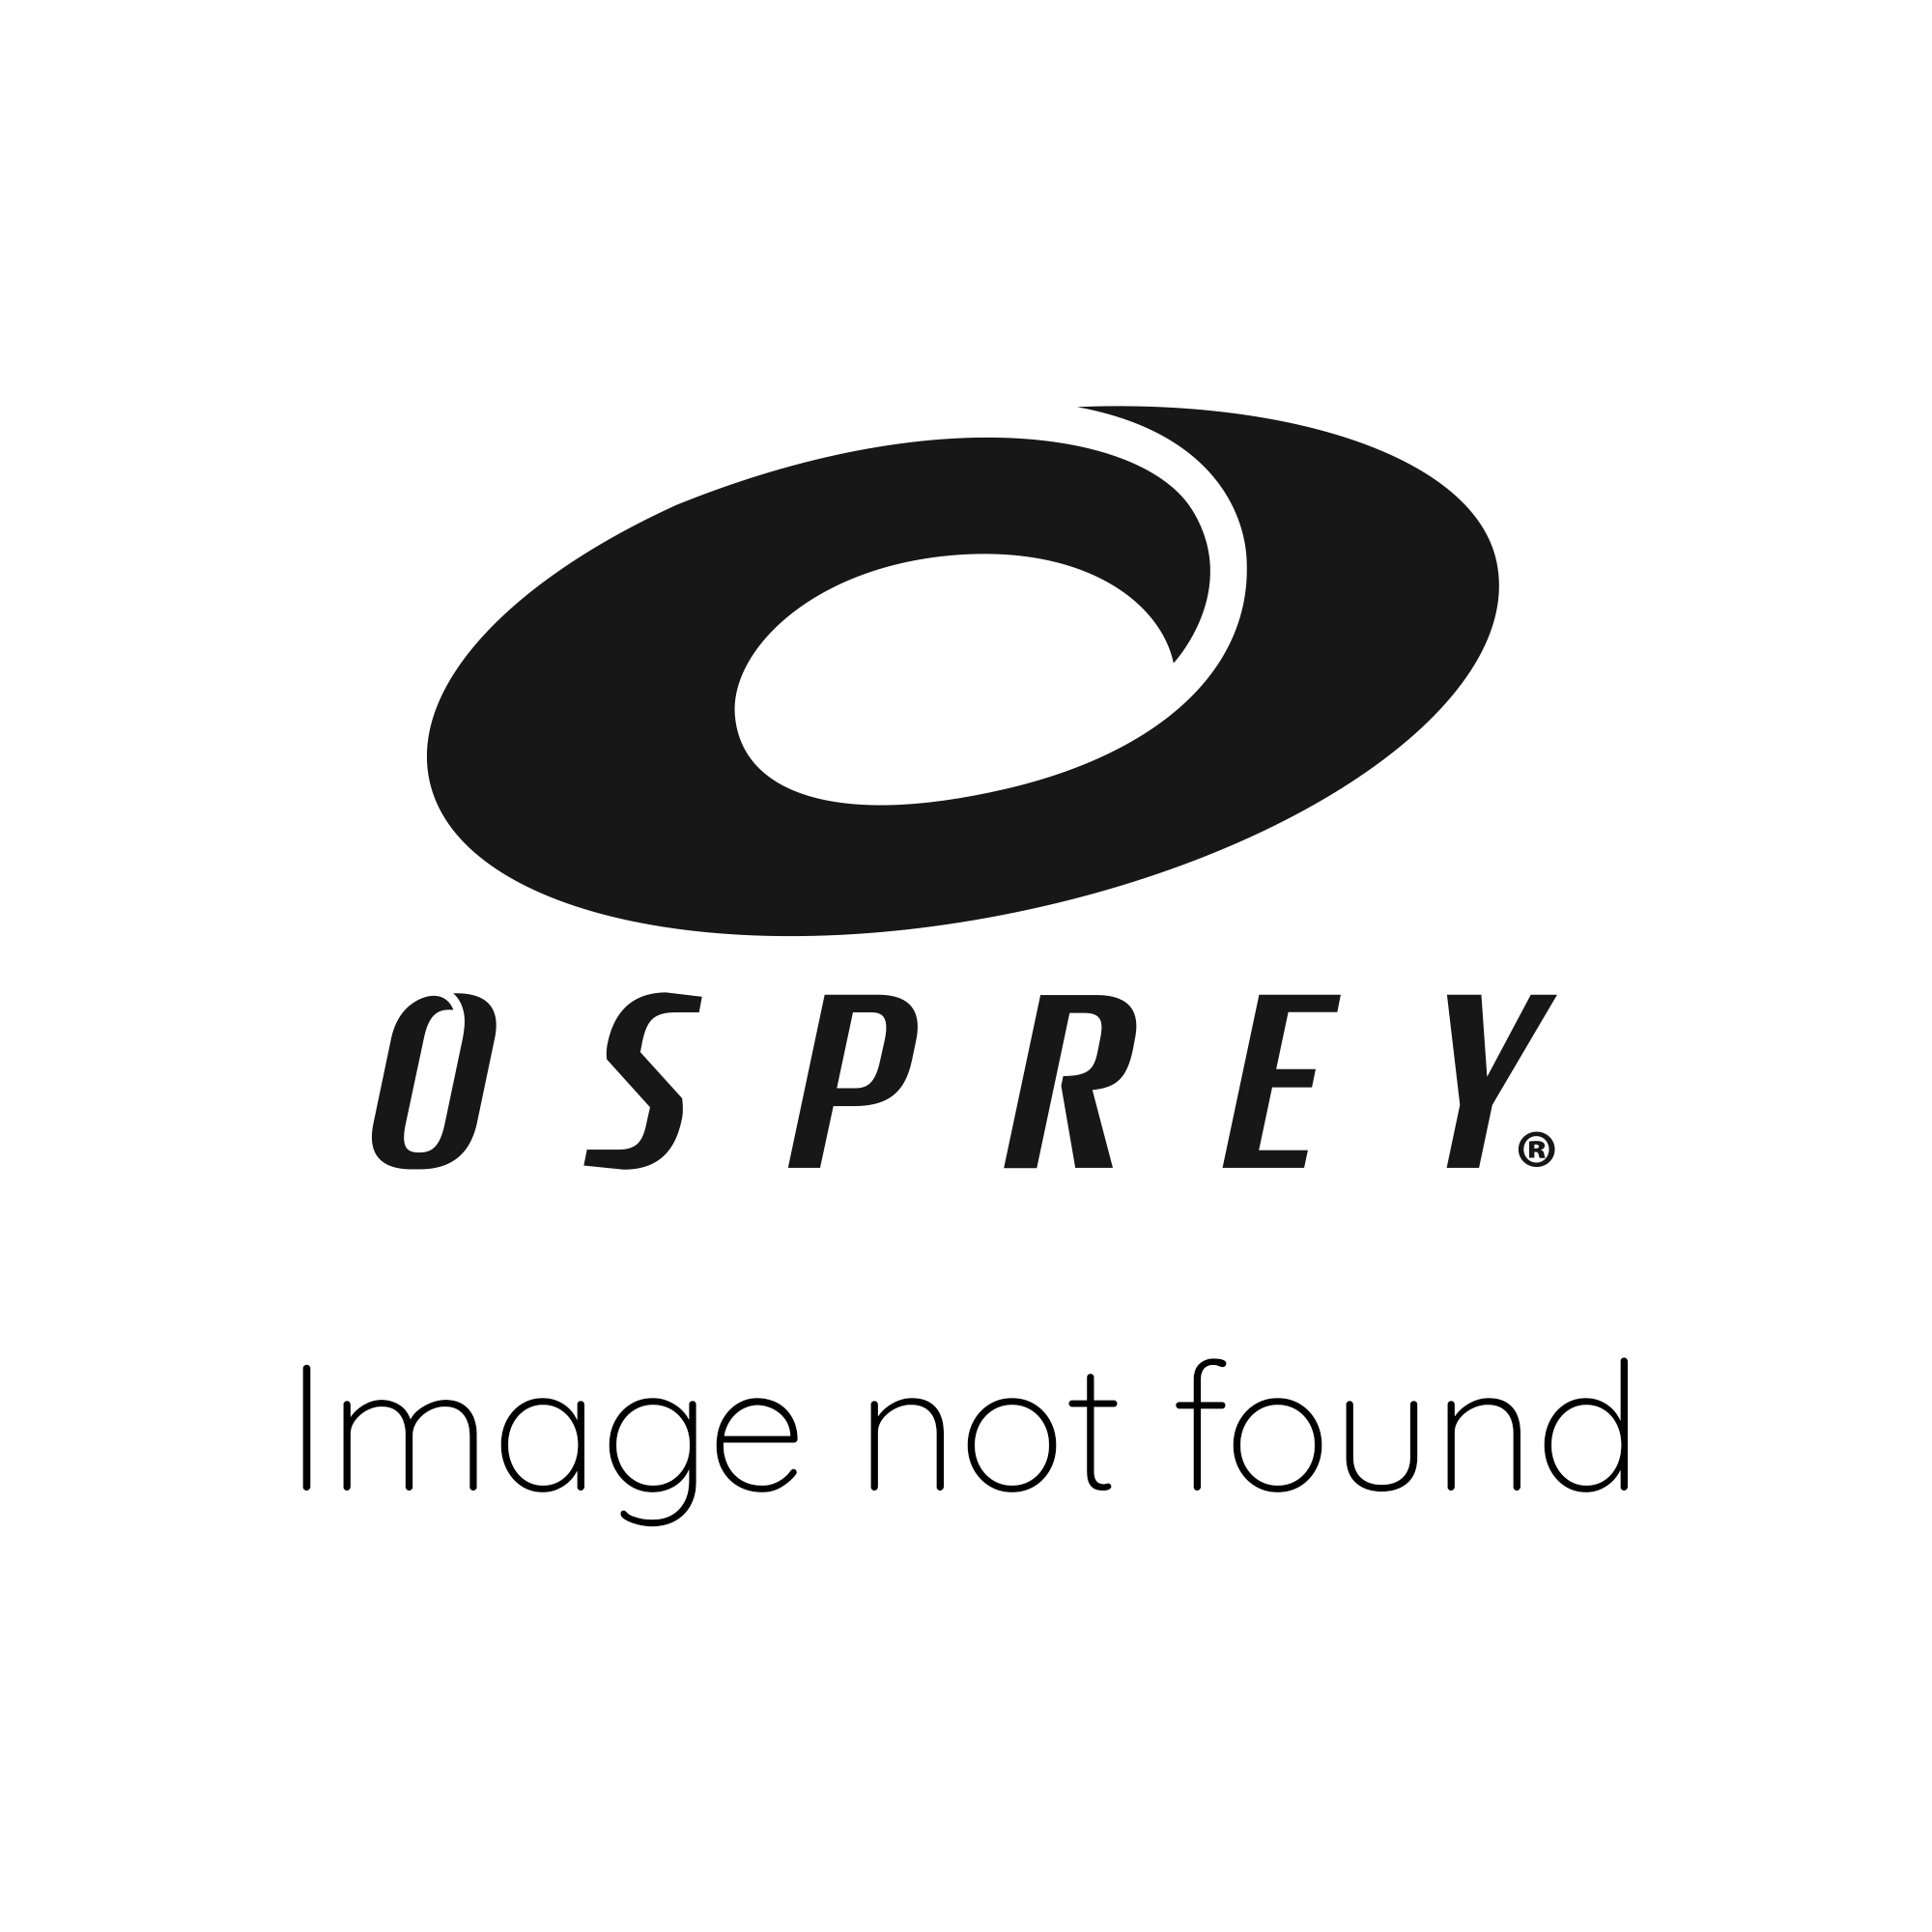 Osprey Womens 5mm Triathlon Full Length Wetsuit Pro - Black